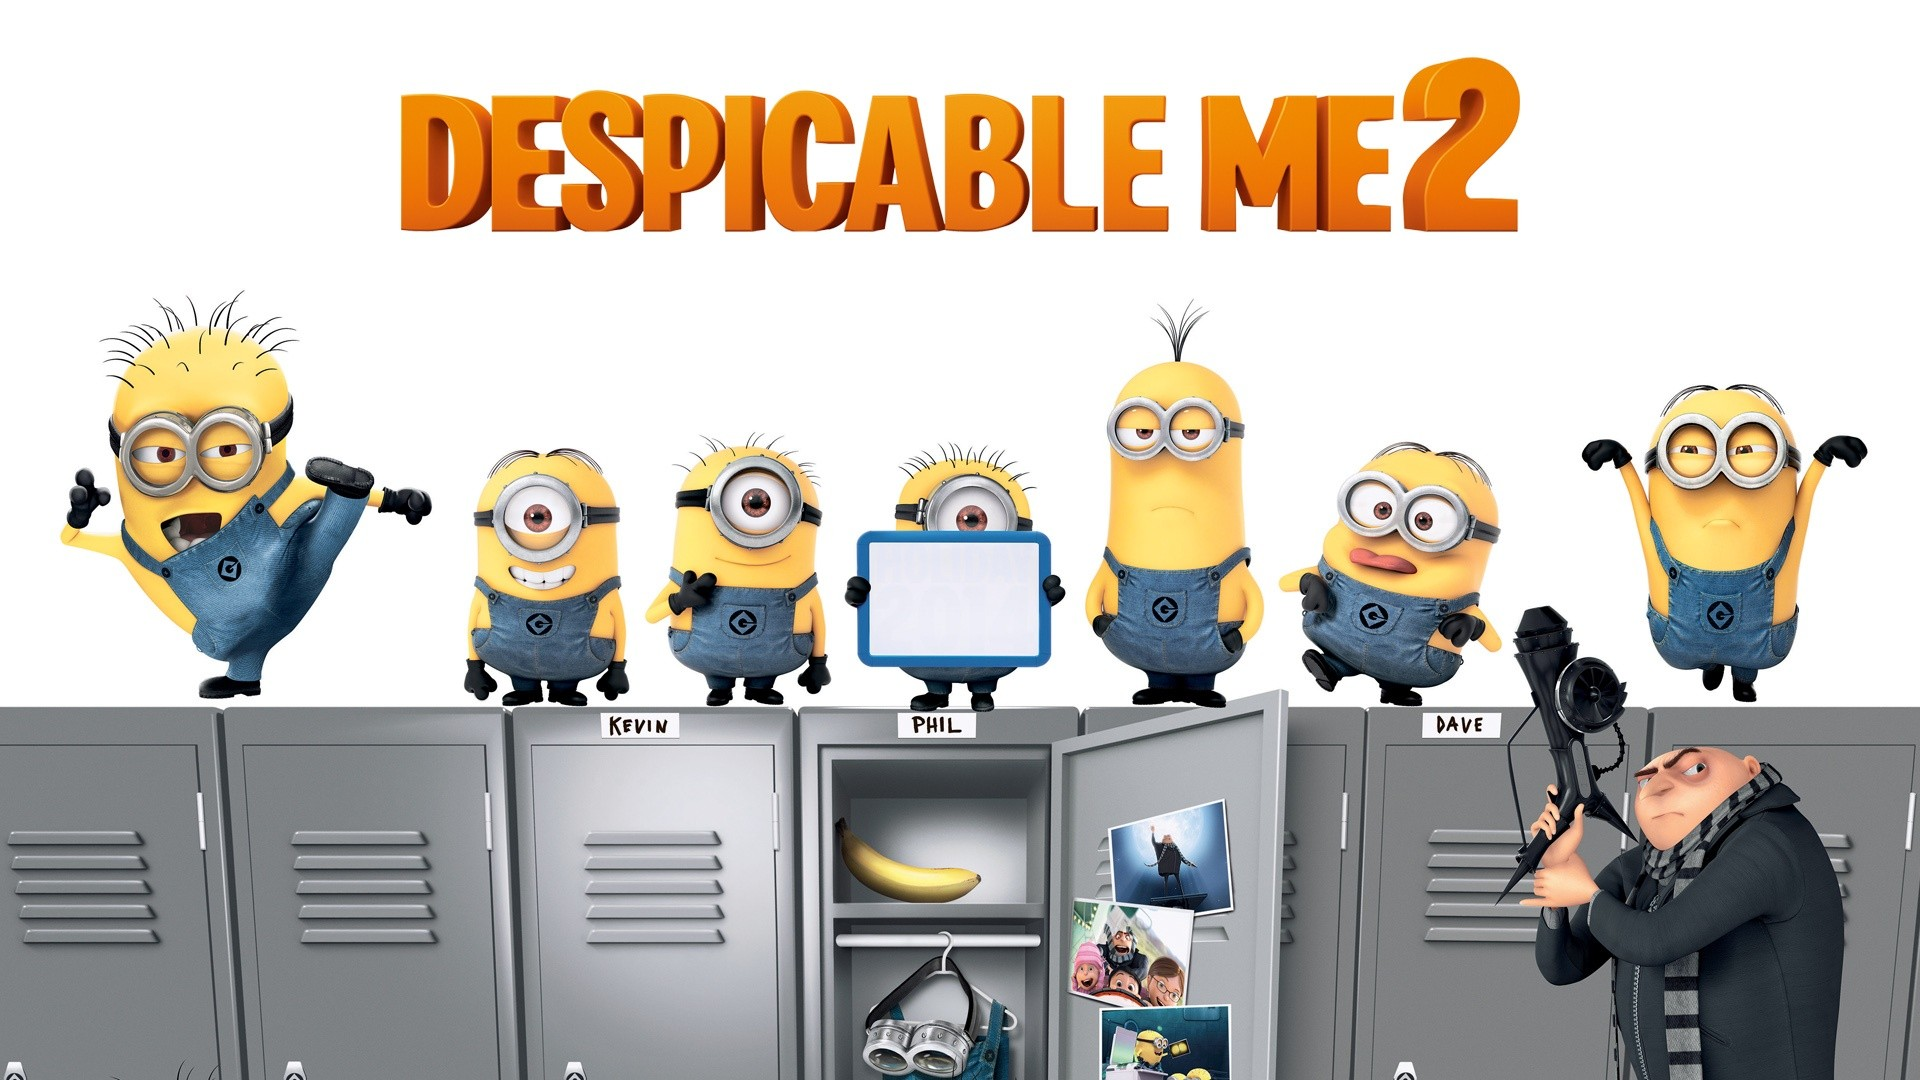 Despicable me 2 wallpapers pictures images despicable me 2 full hd wallpaper 1920x1080 voltagebd Image collections